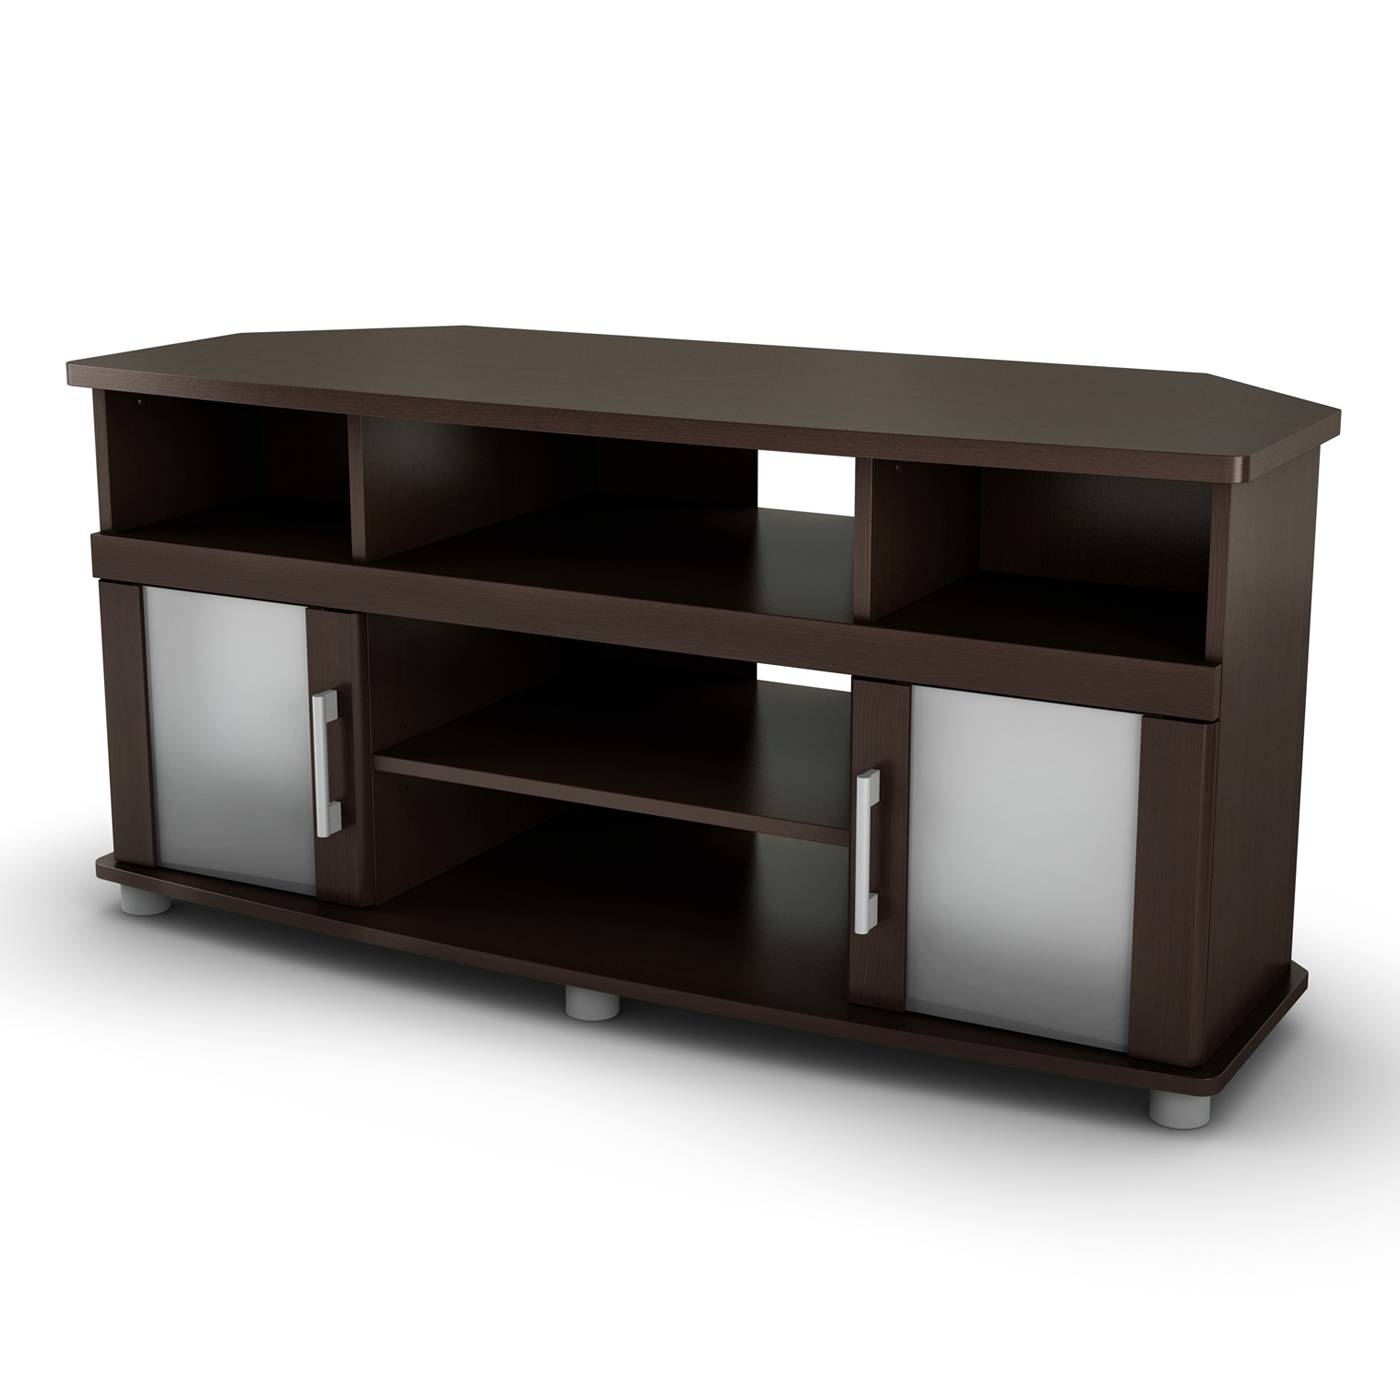 Tv Stands - Corner, Fireplace & More | Lowe's Canada for 24 Inch Deep Tv Stands (Image 9 of 15)